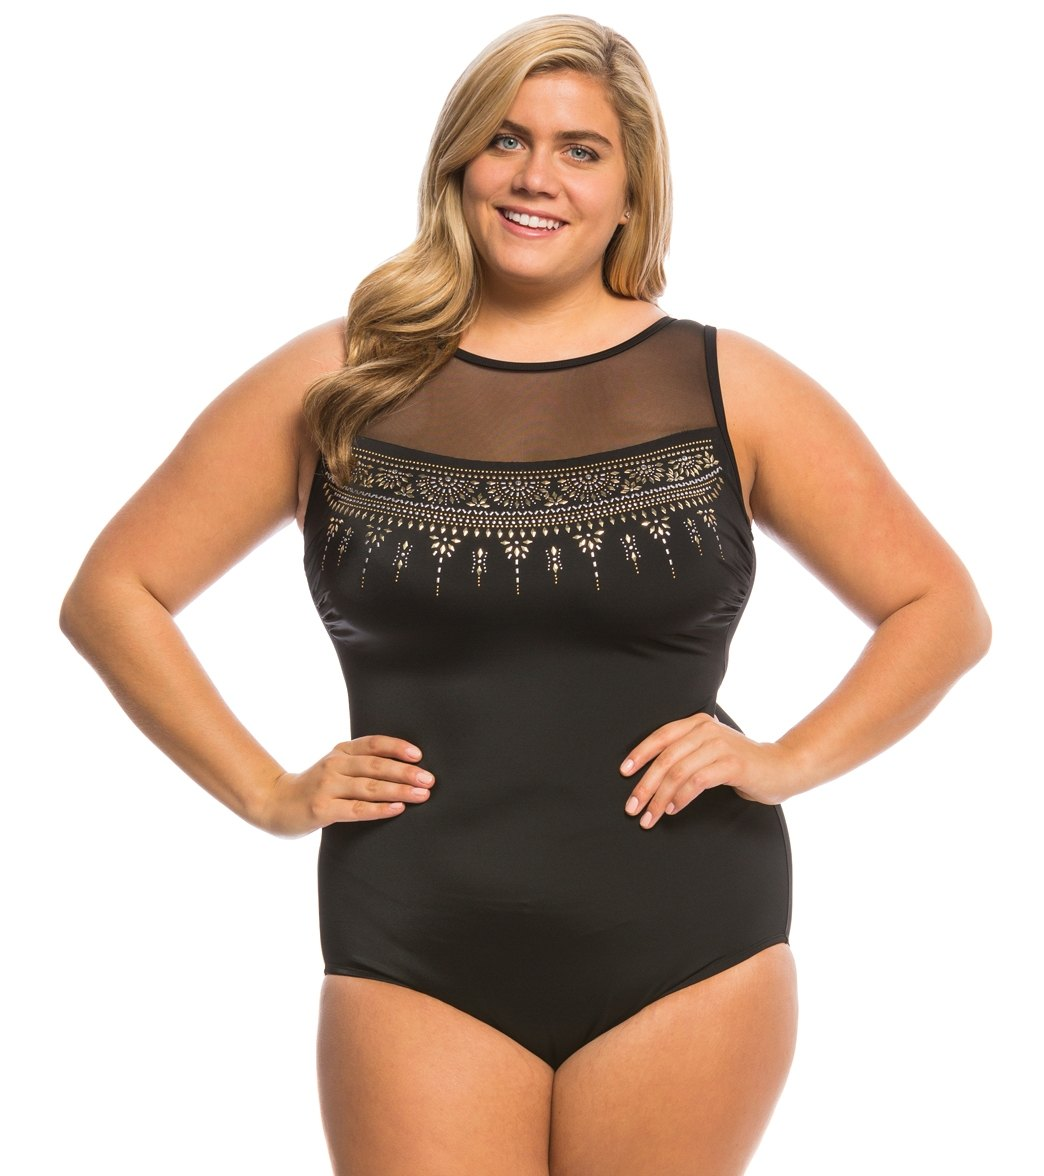 d937a9a2fd0 ... Plus Size Embellished Mesh Highneck One Piece Swimsuit. MODEL  MEASUREMENTS